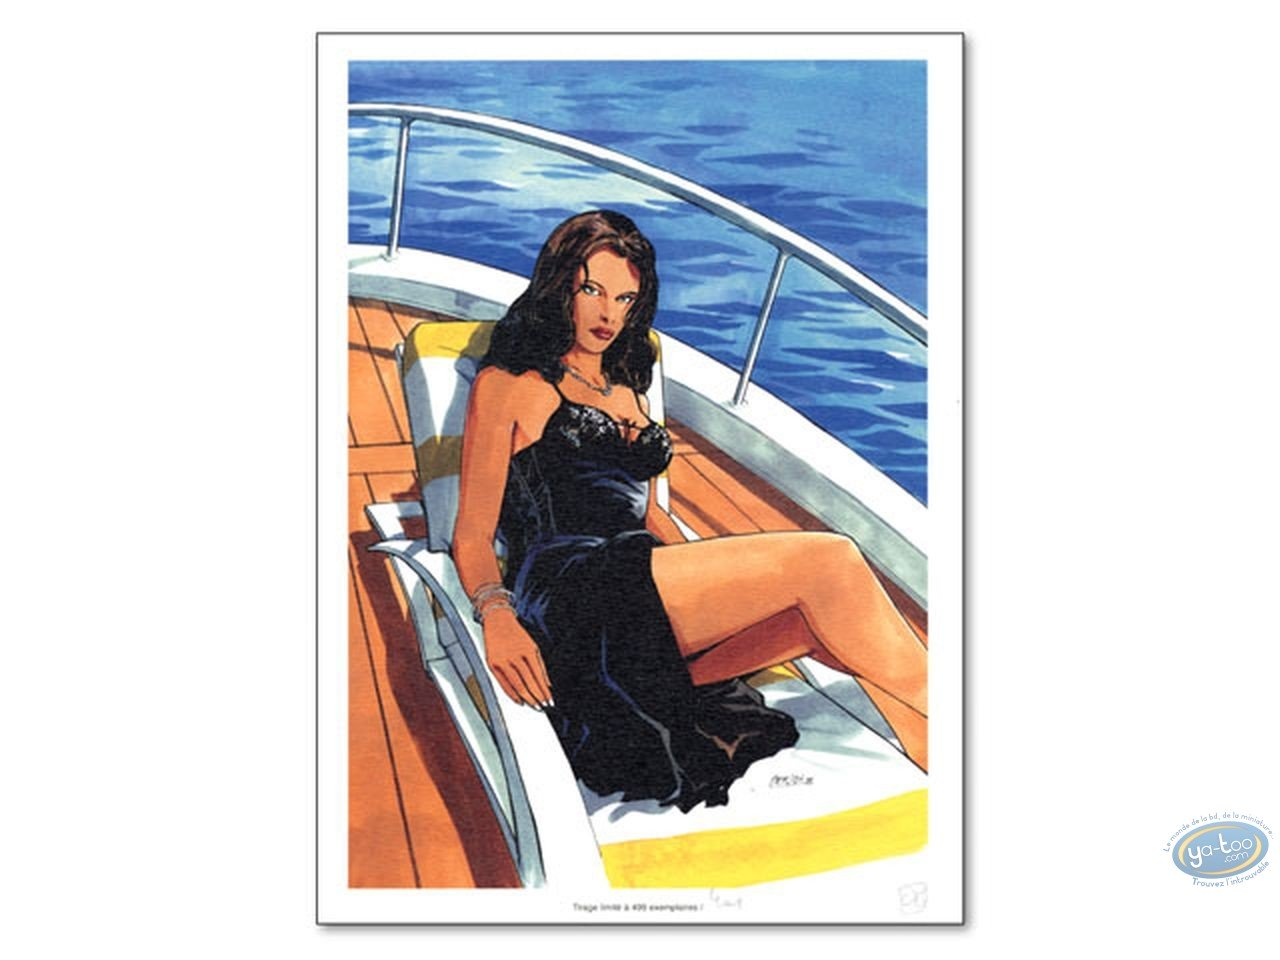 Bookplate Offset, Tony Corso : Woman on Boat